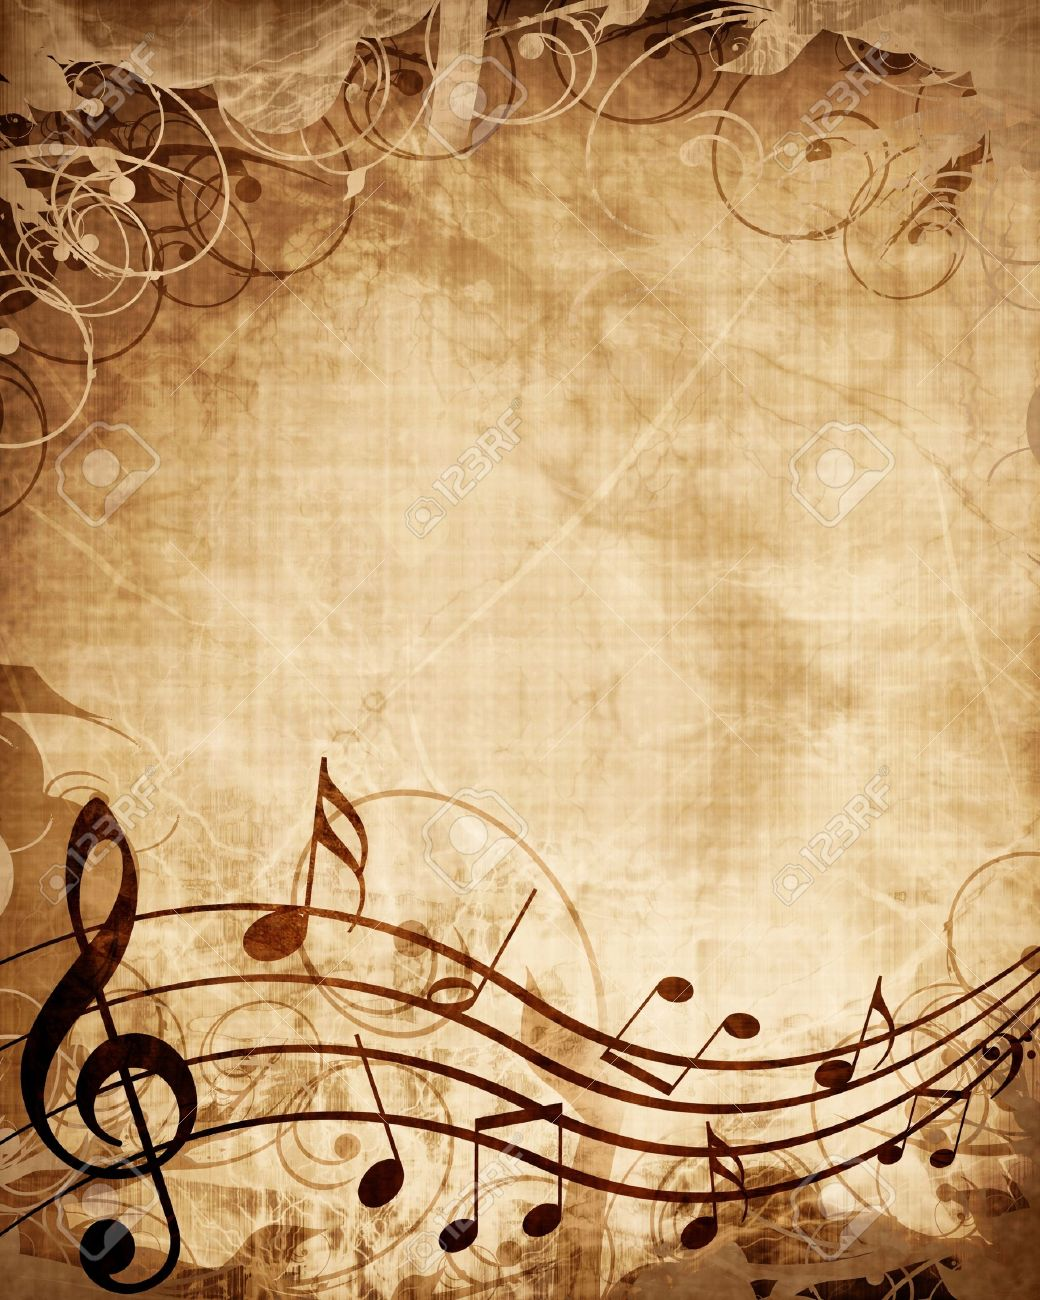 Old music sheet with musical notes Stock Photo - 15612726